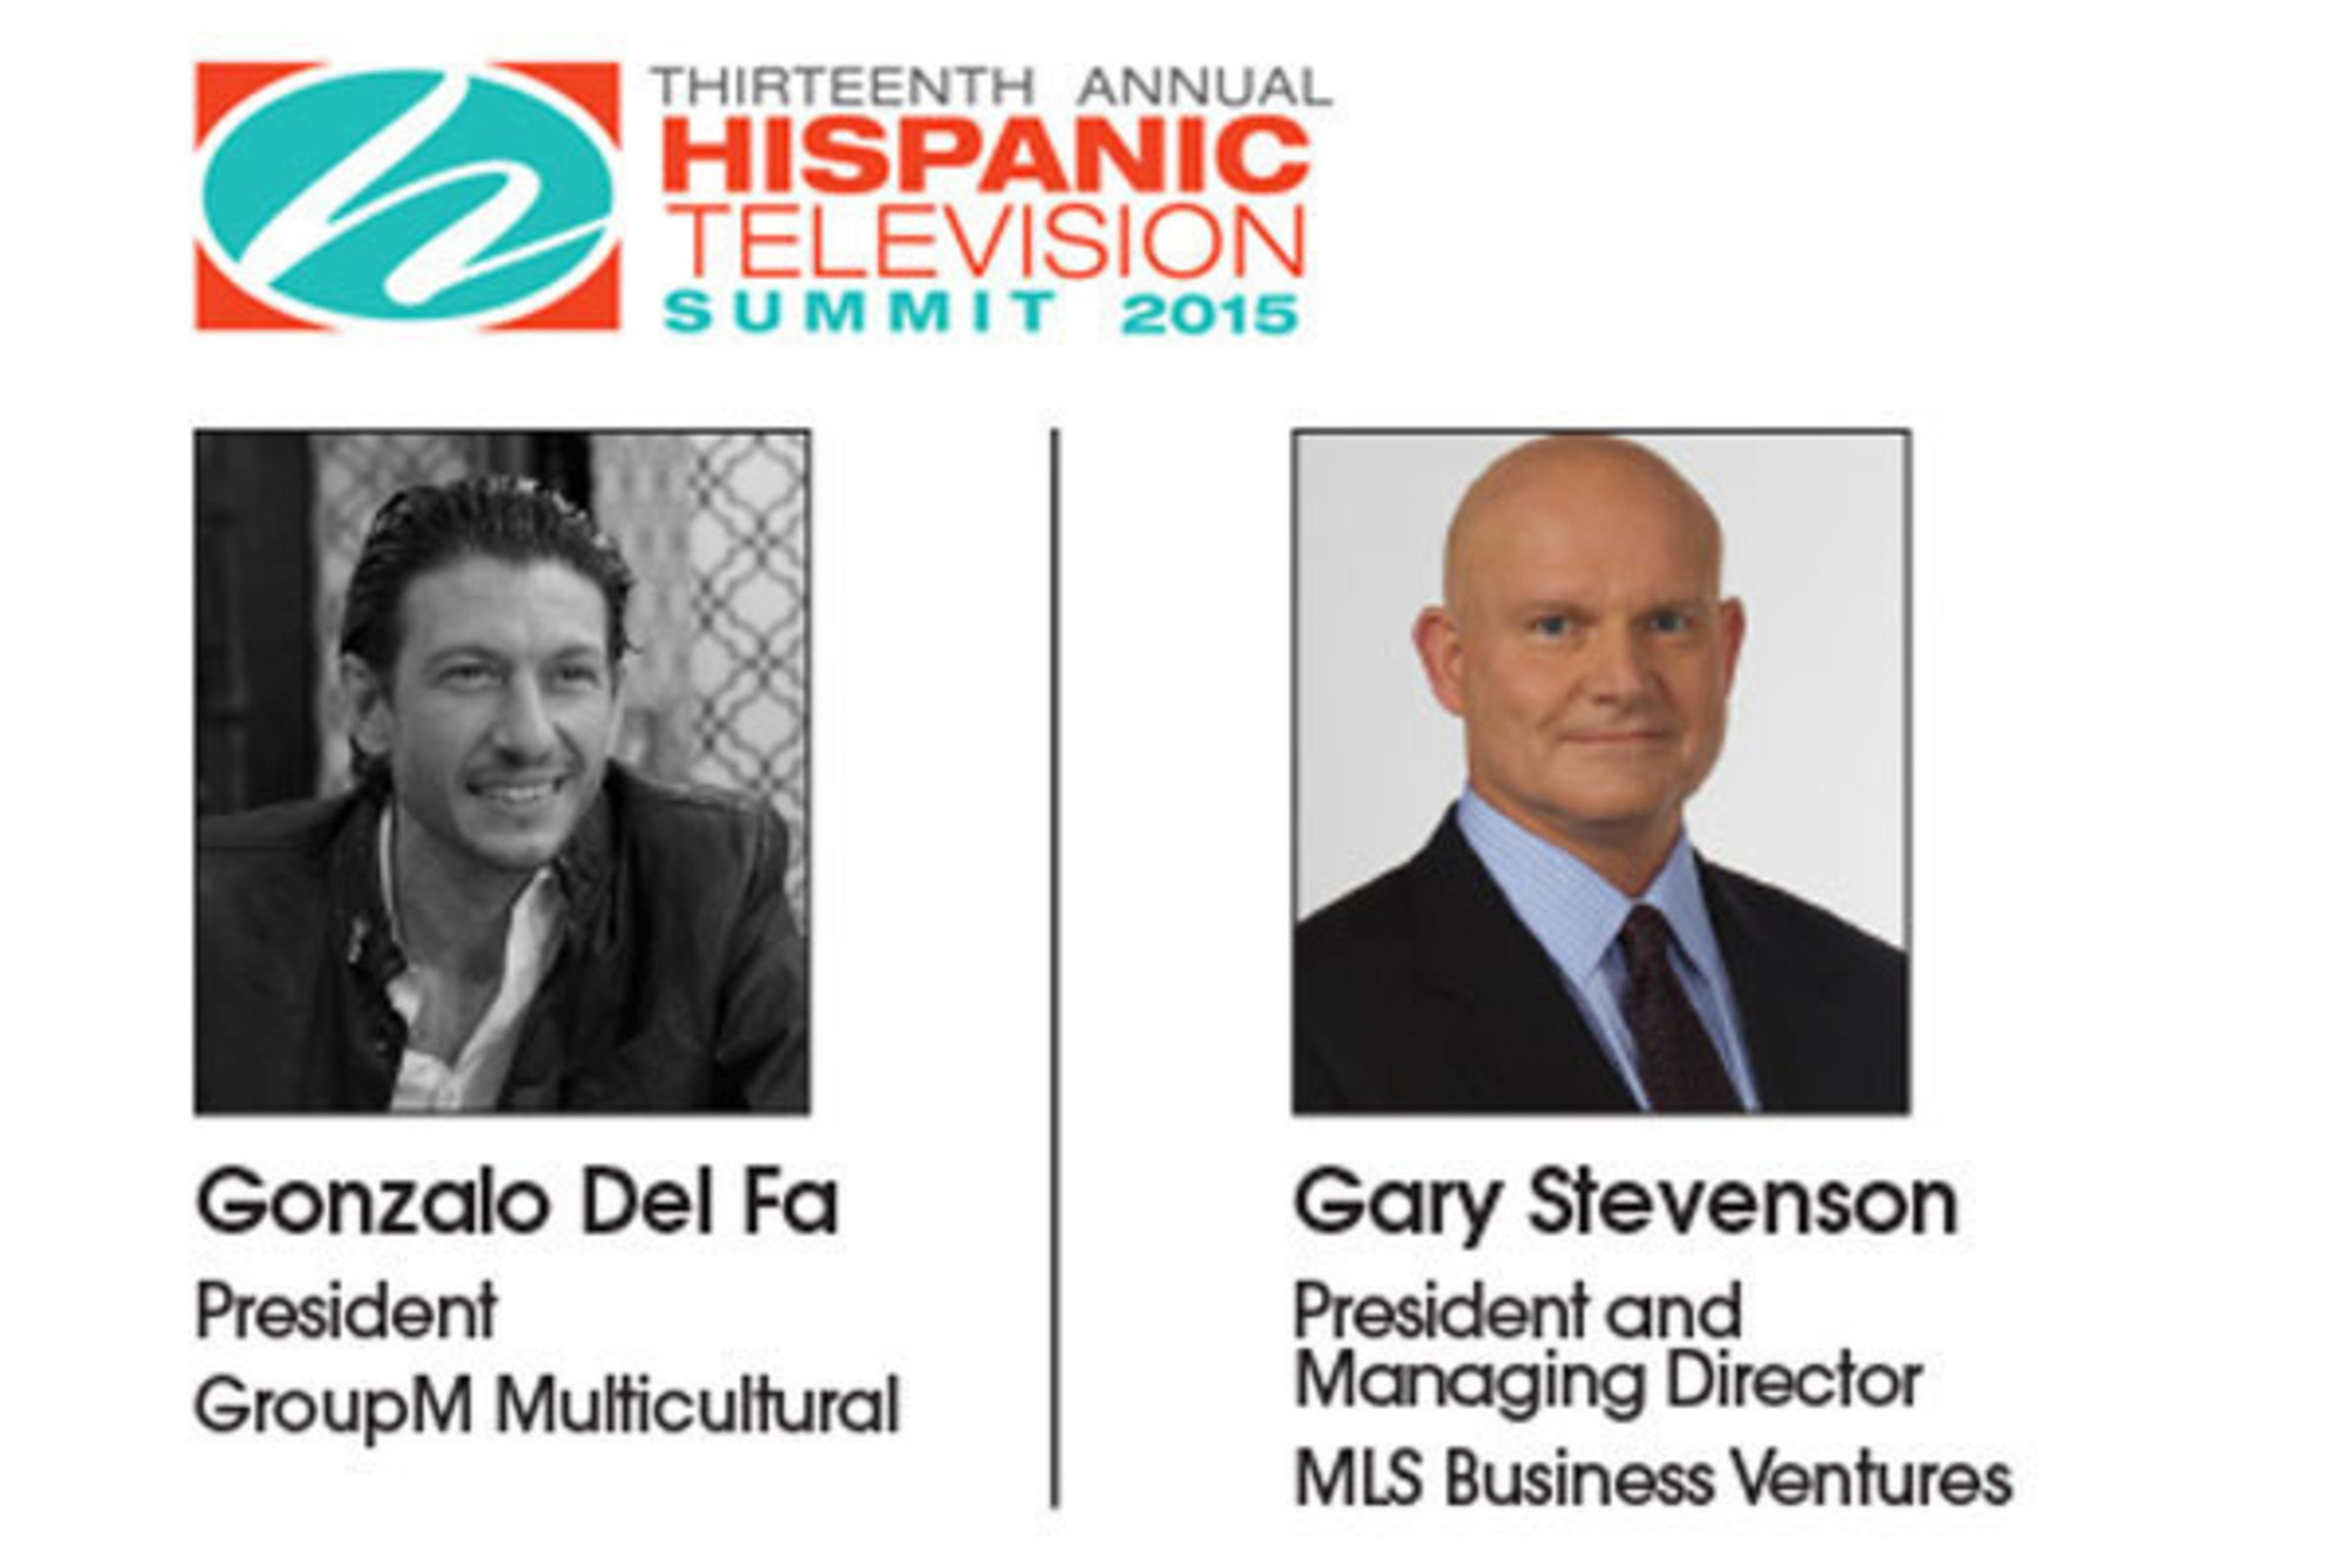 13th Annual Hispanic Television Summit to Be Keynoted by GroupM Multicultural's Gonzalo del Fa and